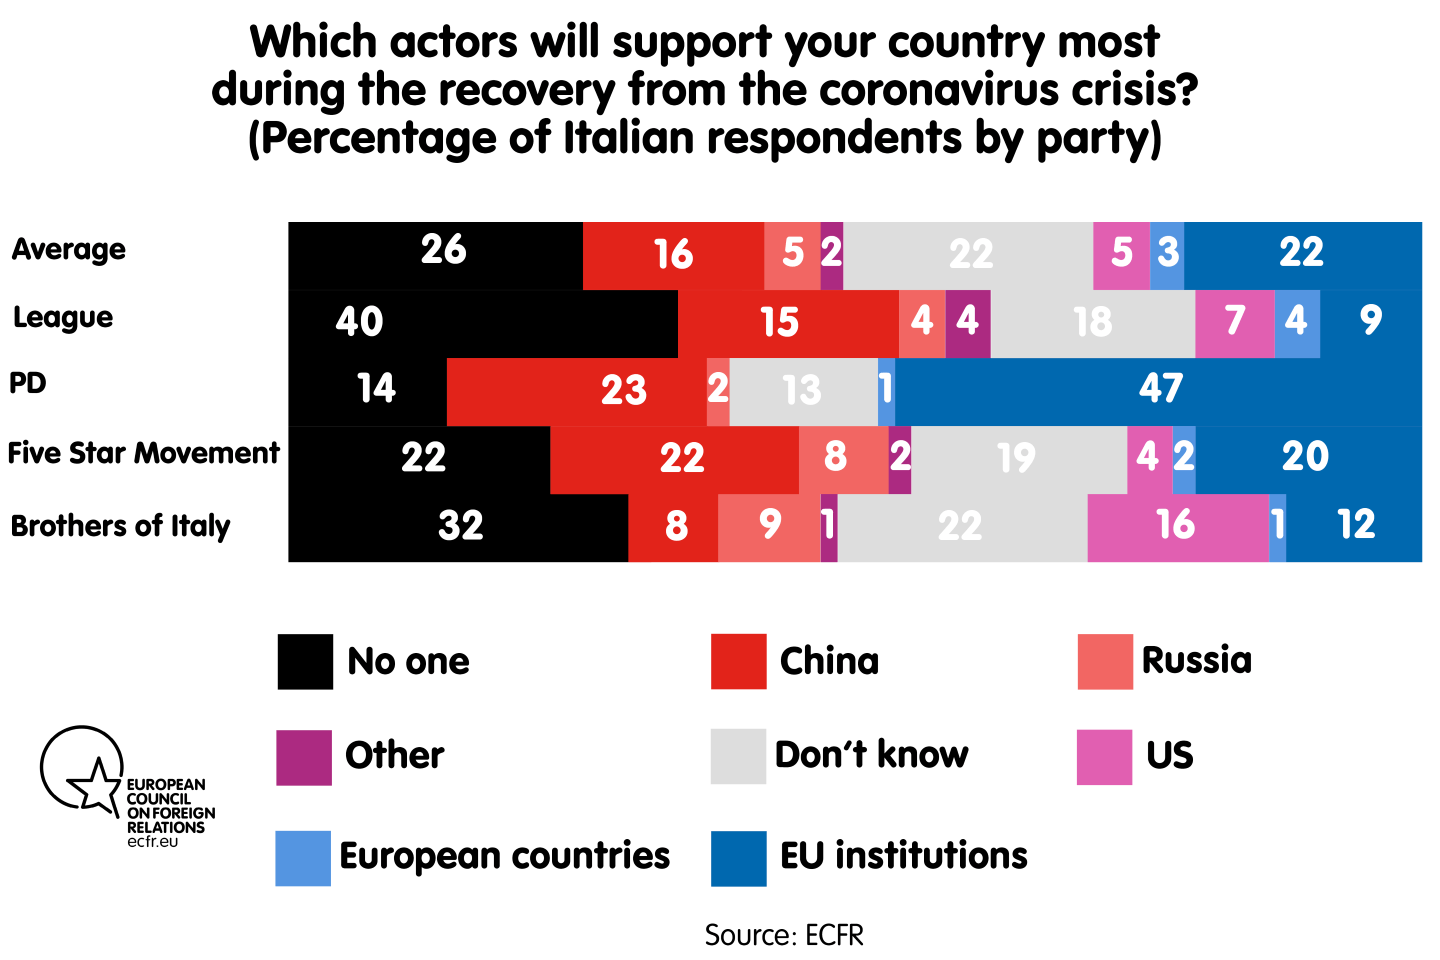 Which actors will support your country most during the recovery from the coronavirus crisis? By party